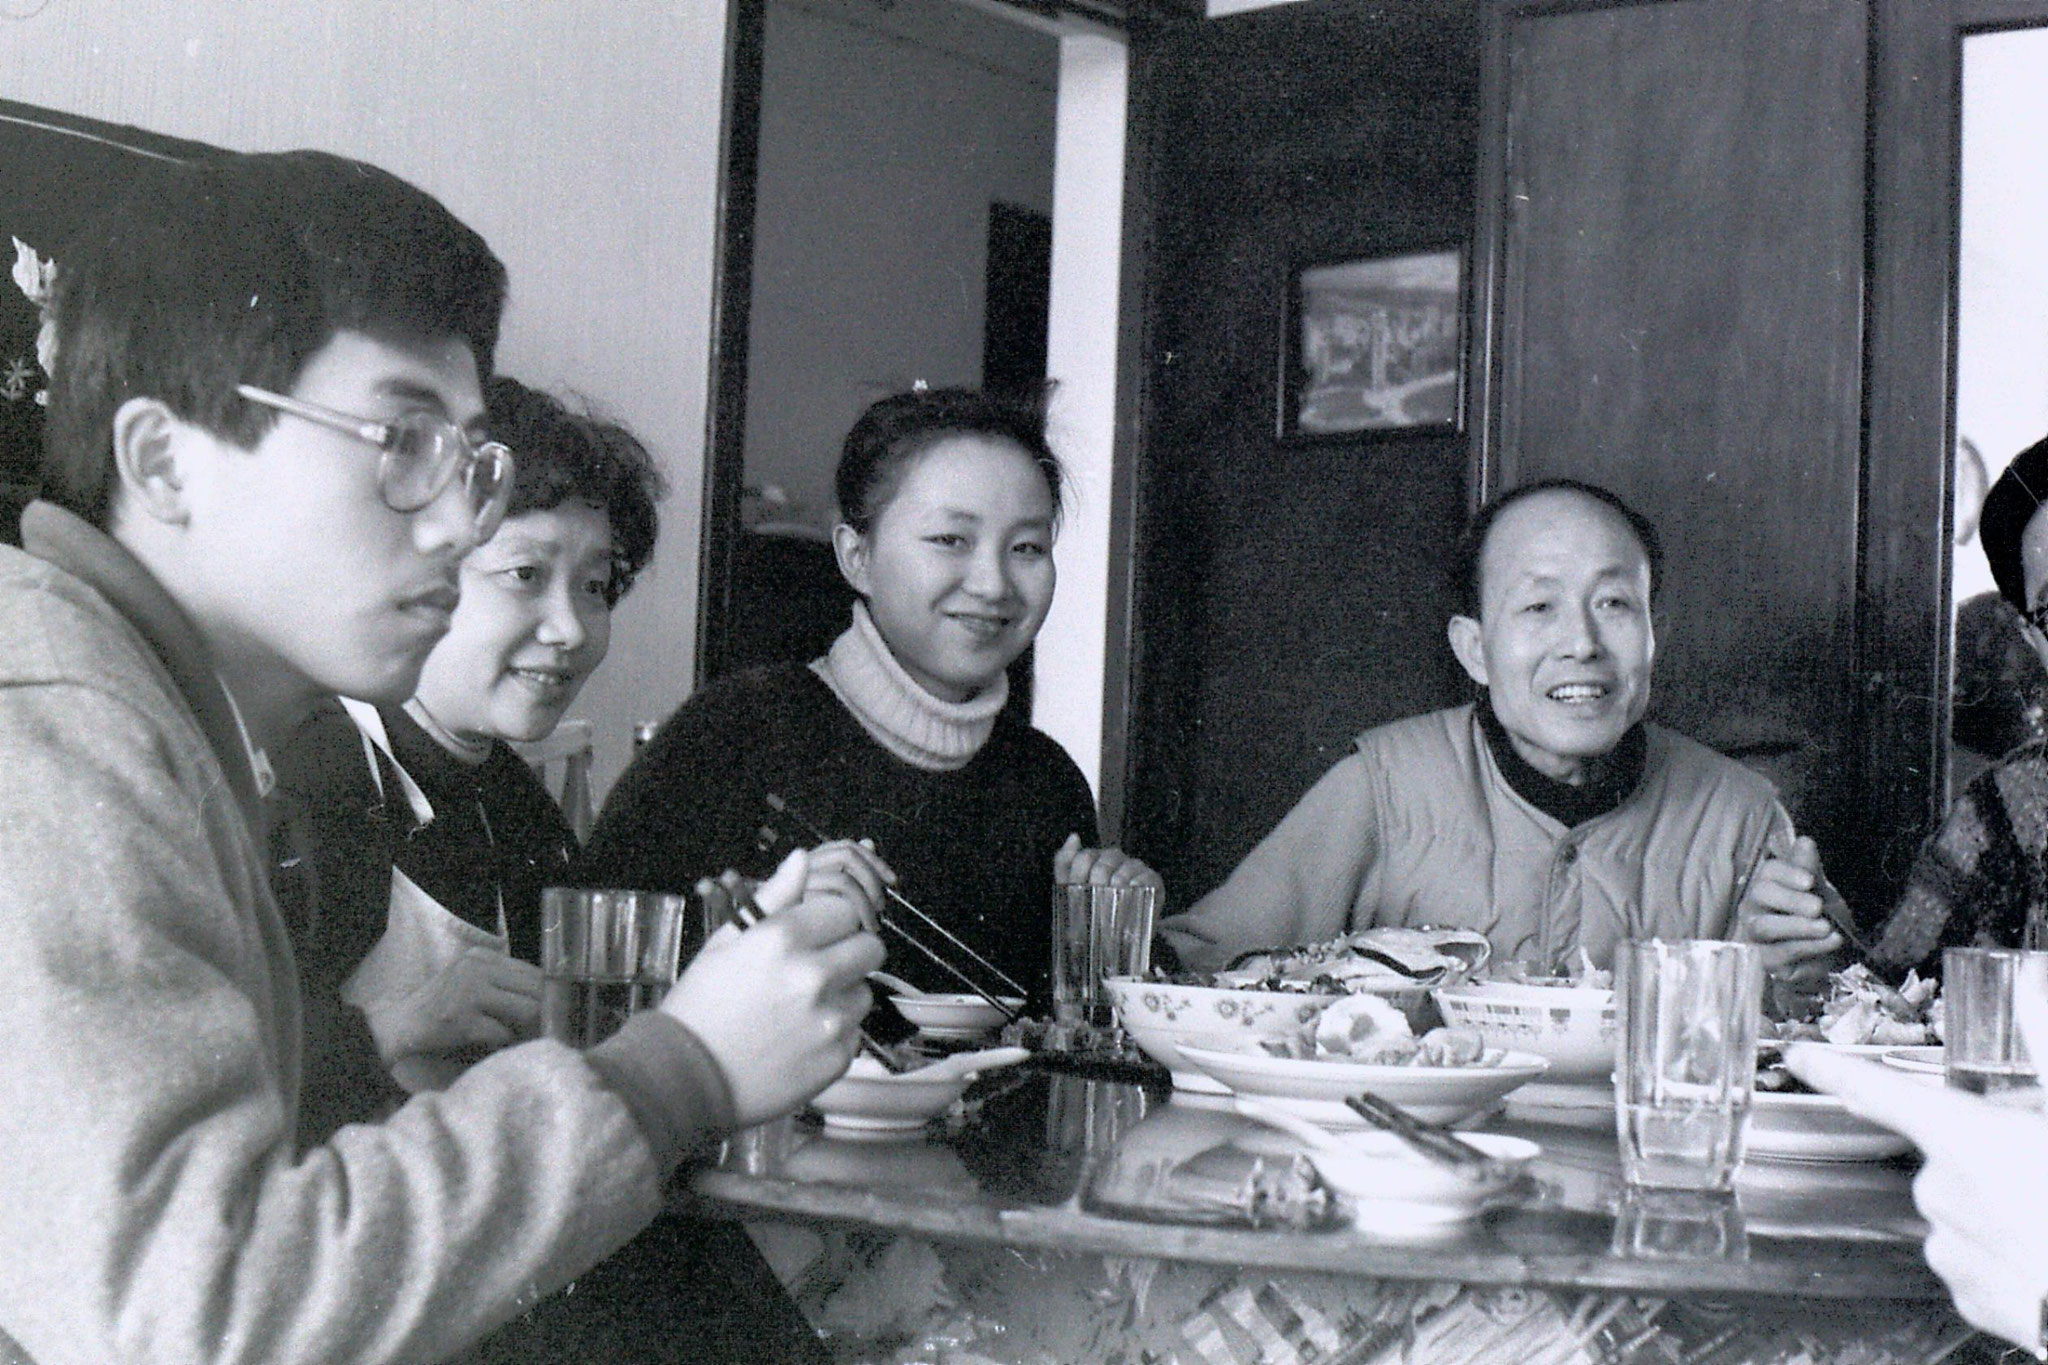 11/2/1989: 8: Shanghai lunch